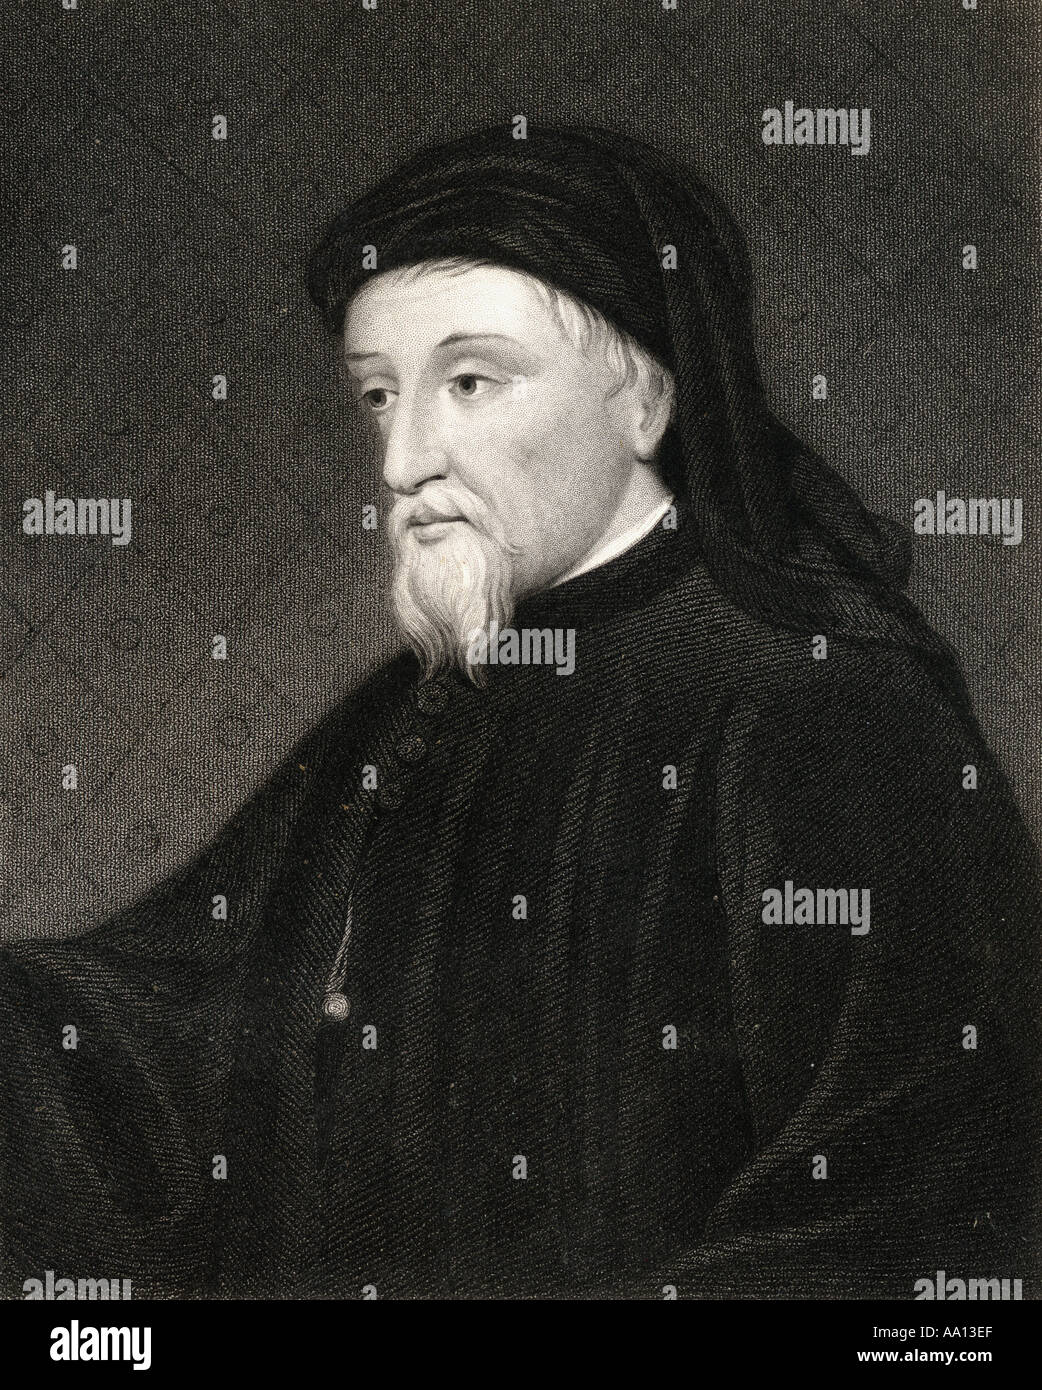 Geoffrey Chaucer, aka Father of English literatura, c.1343 - 1400. English writer and poet. - Stock Image